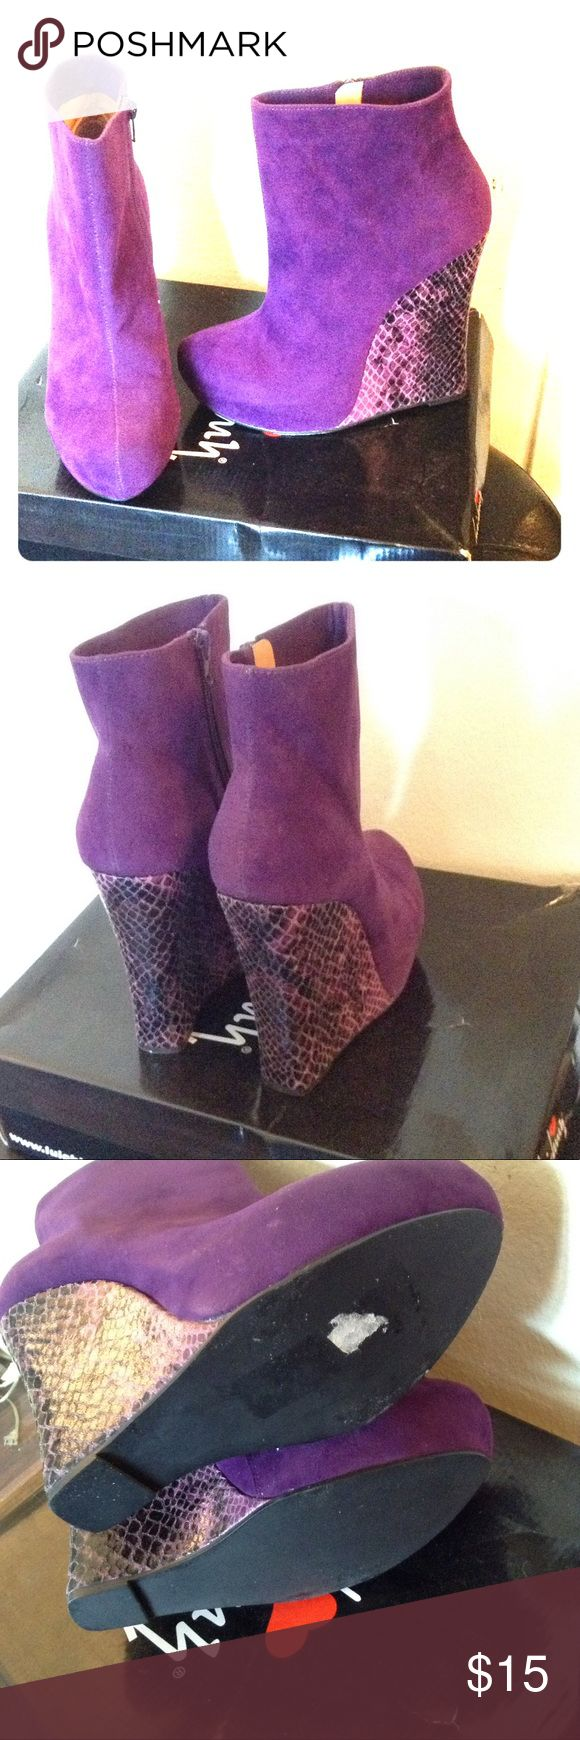 Purple wedge boots Snake skin print wedge ankle boots great condition JustFab Shoes Ankle Boots & Booties